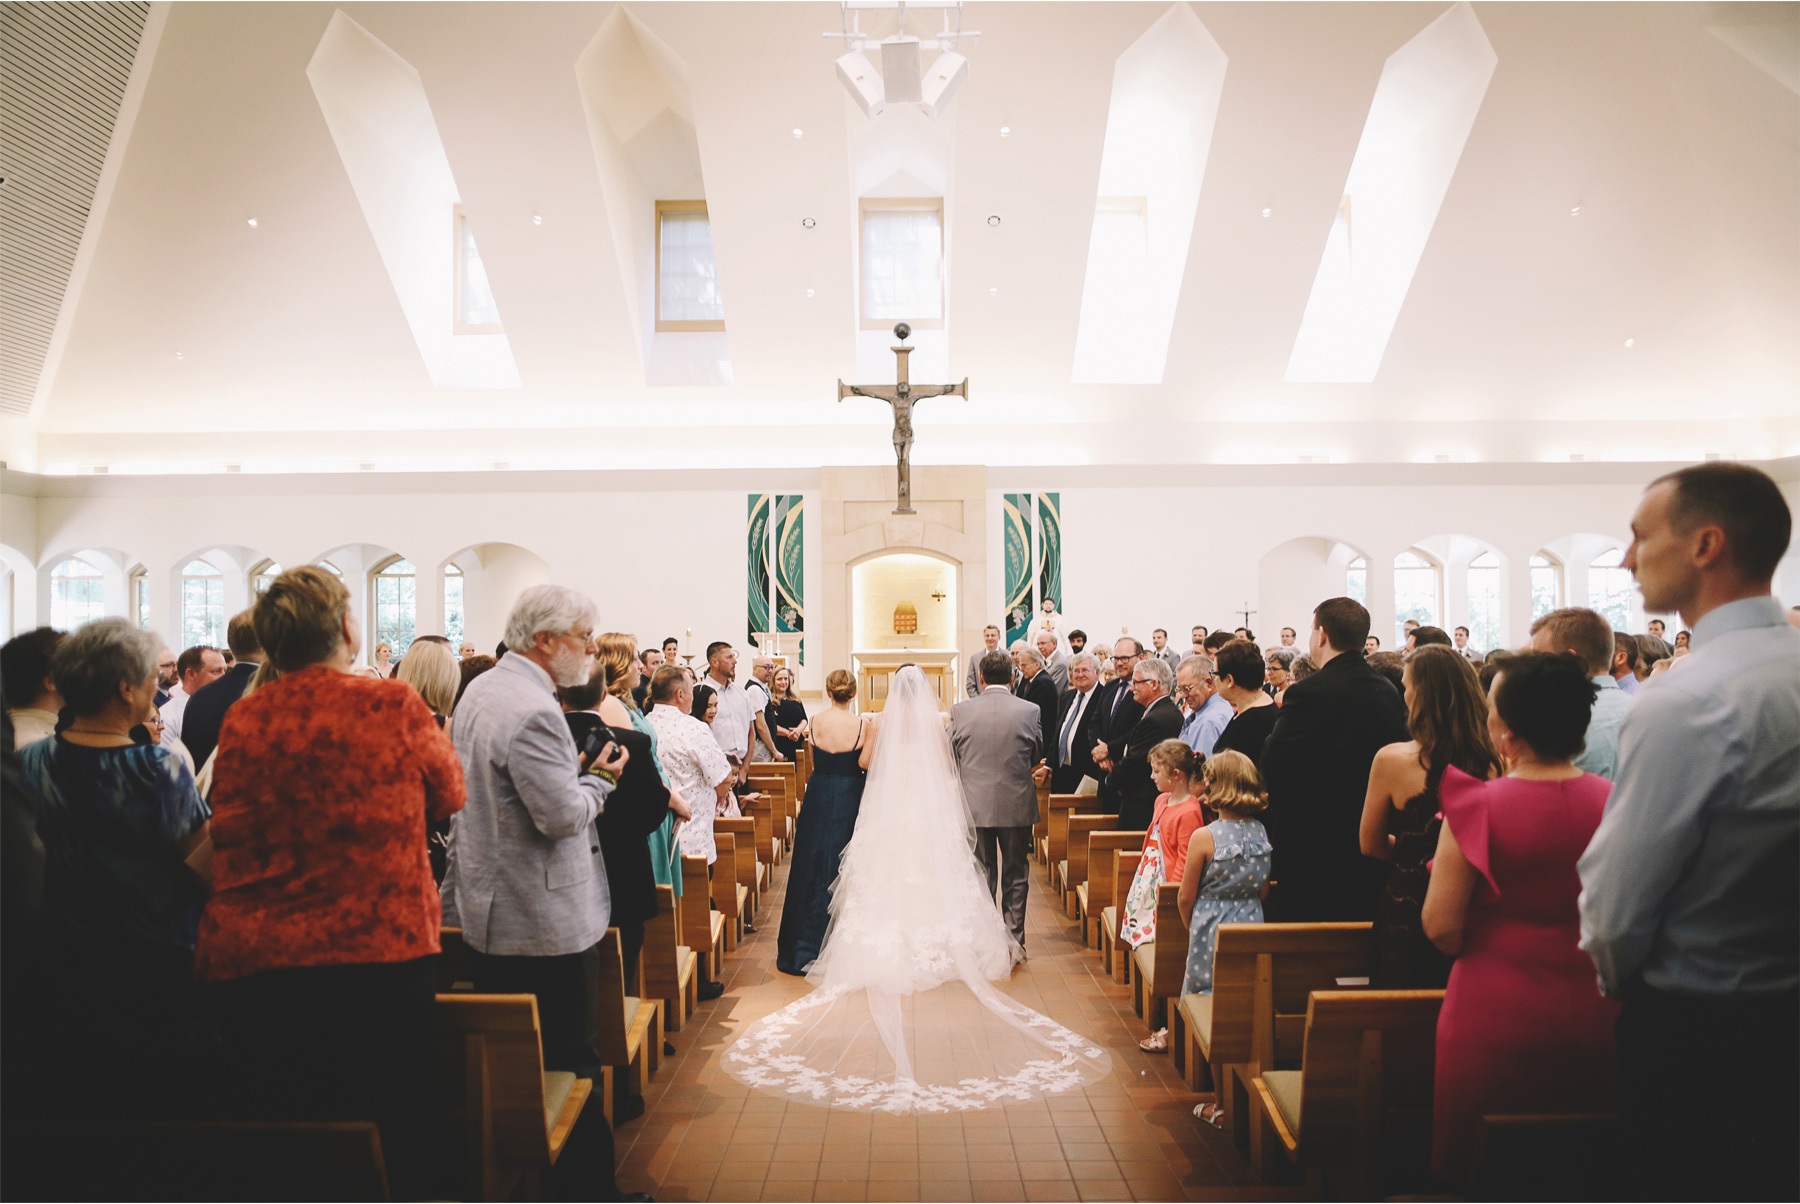 10-Minneapolis-Minnesota-Wedding-Photography-by-Vick-Photography-Our-Lady-of-Grace-Church-Ceremony-Brigid-and-Ernie.jpg